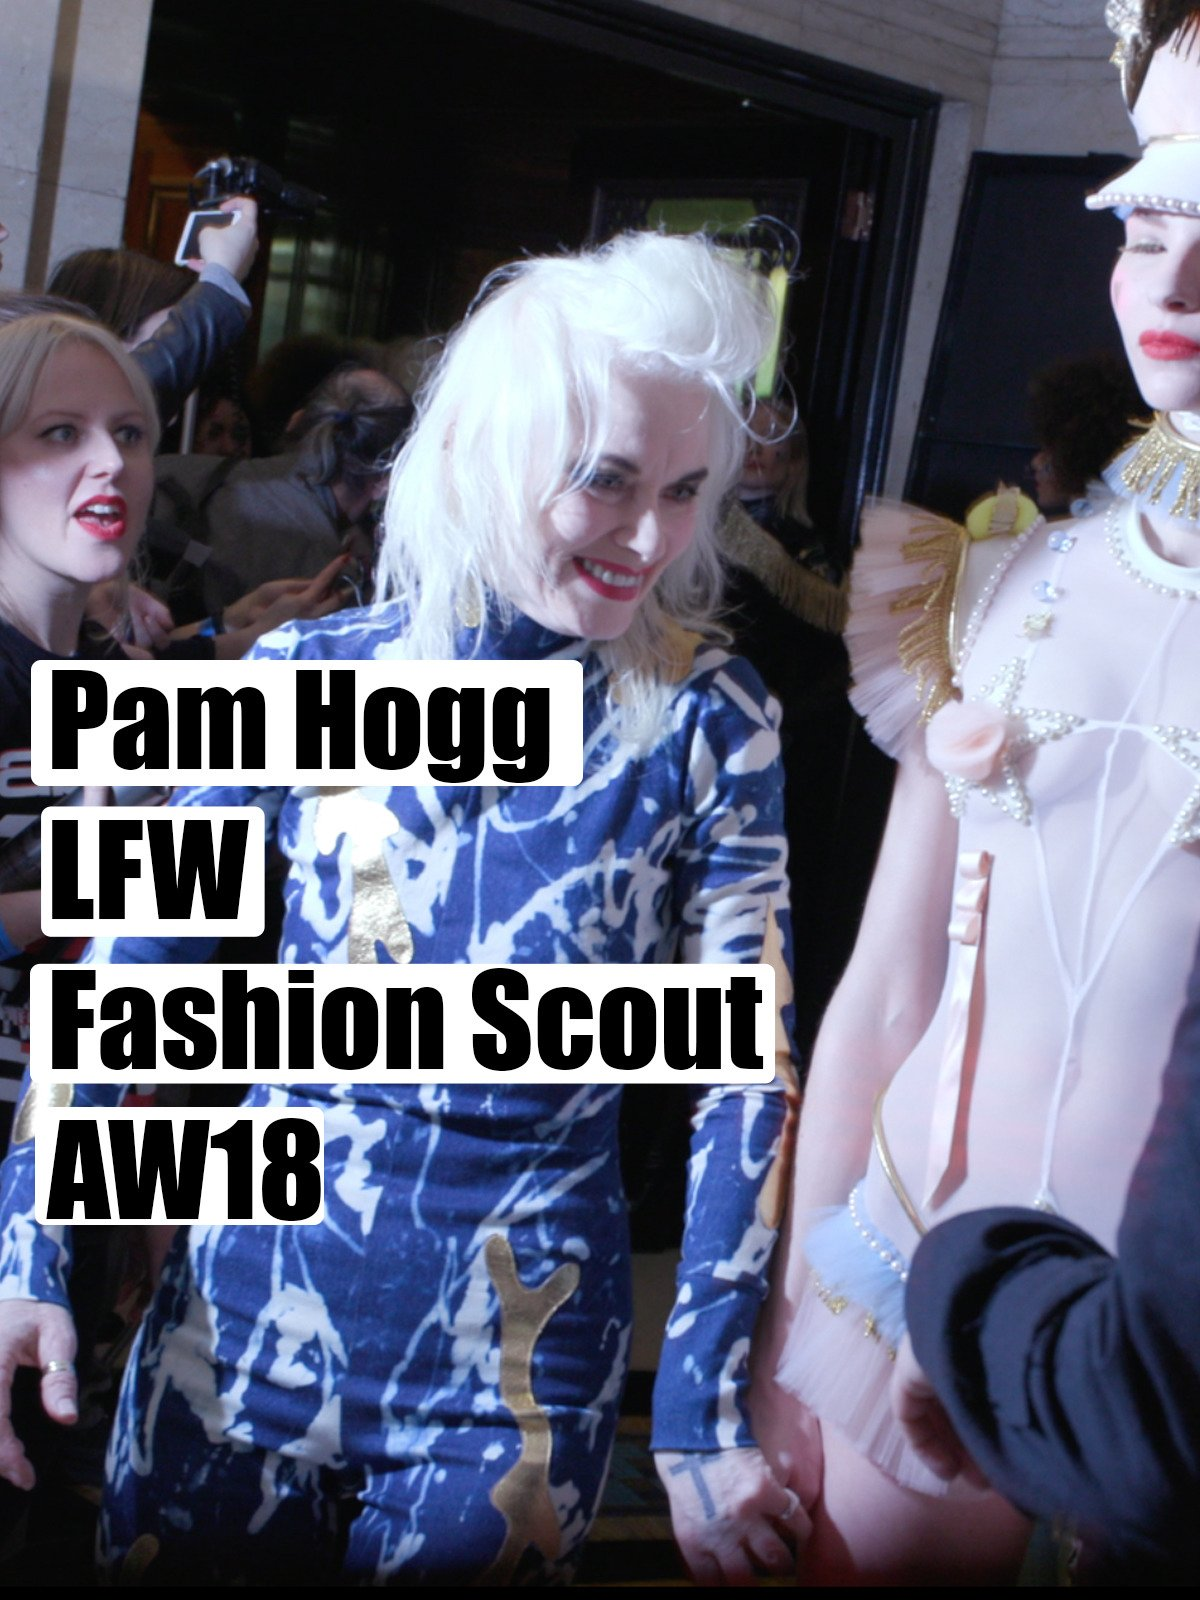 Pam Hogg London Fashion Week Fashion Scout AW 18